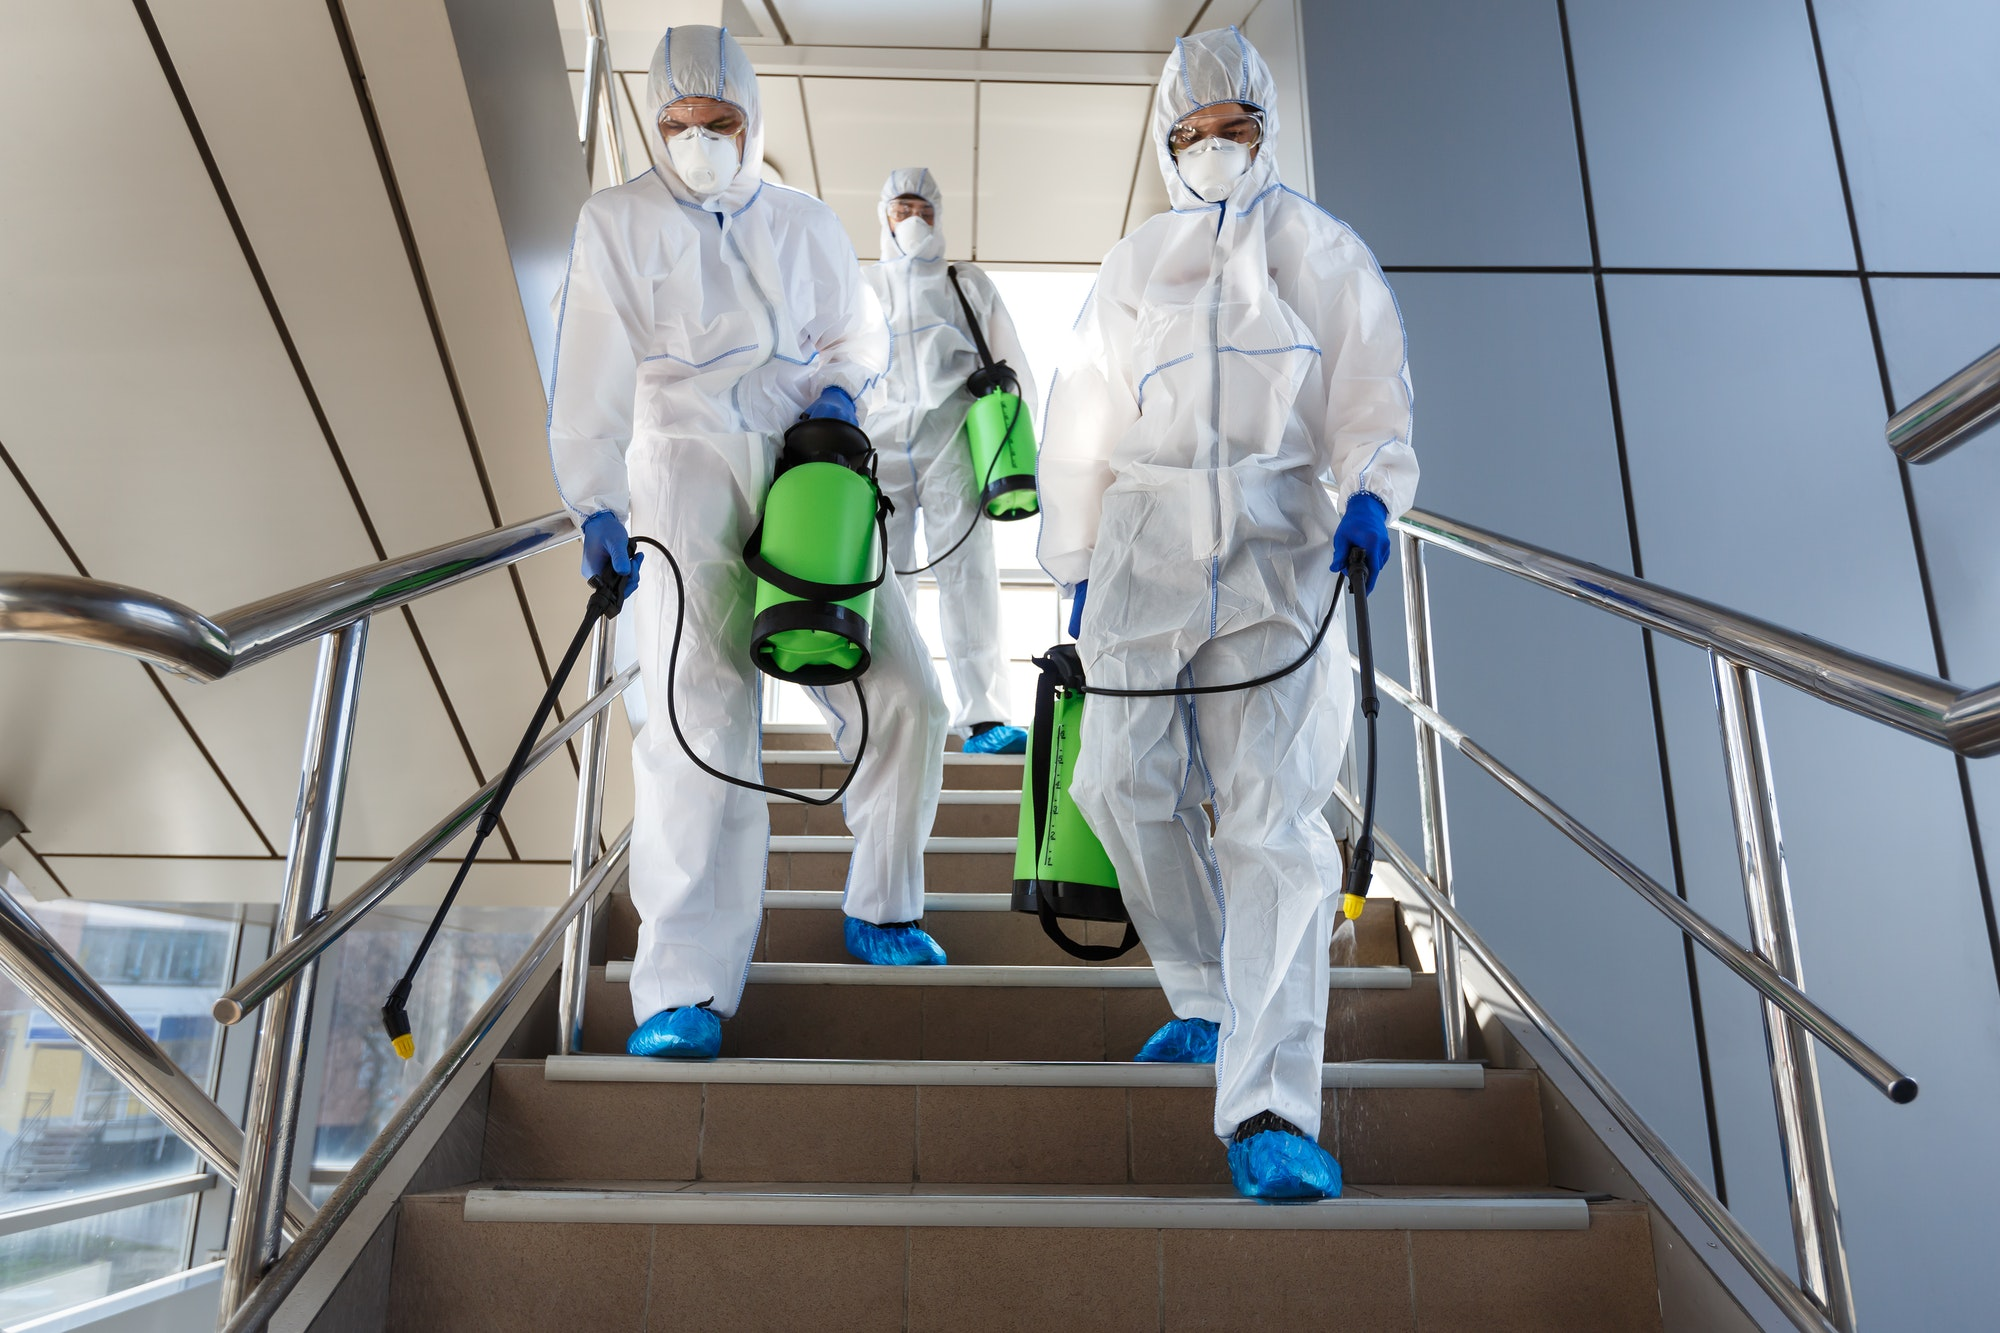 People wearing protective suits disinfecting stairs with spray